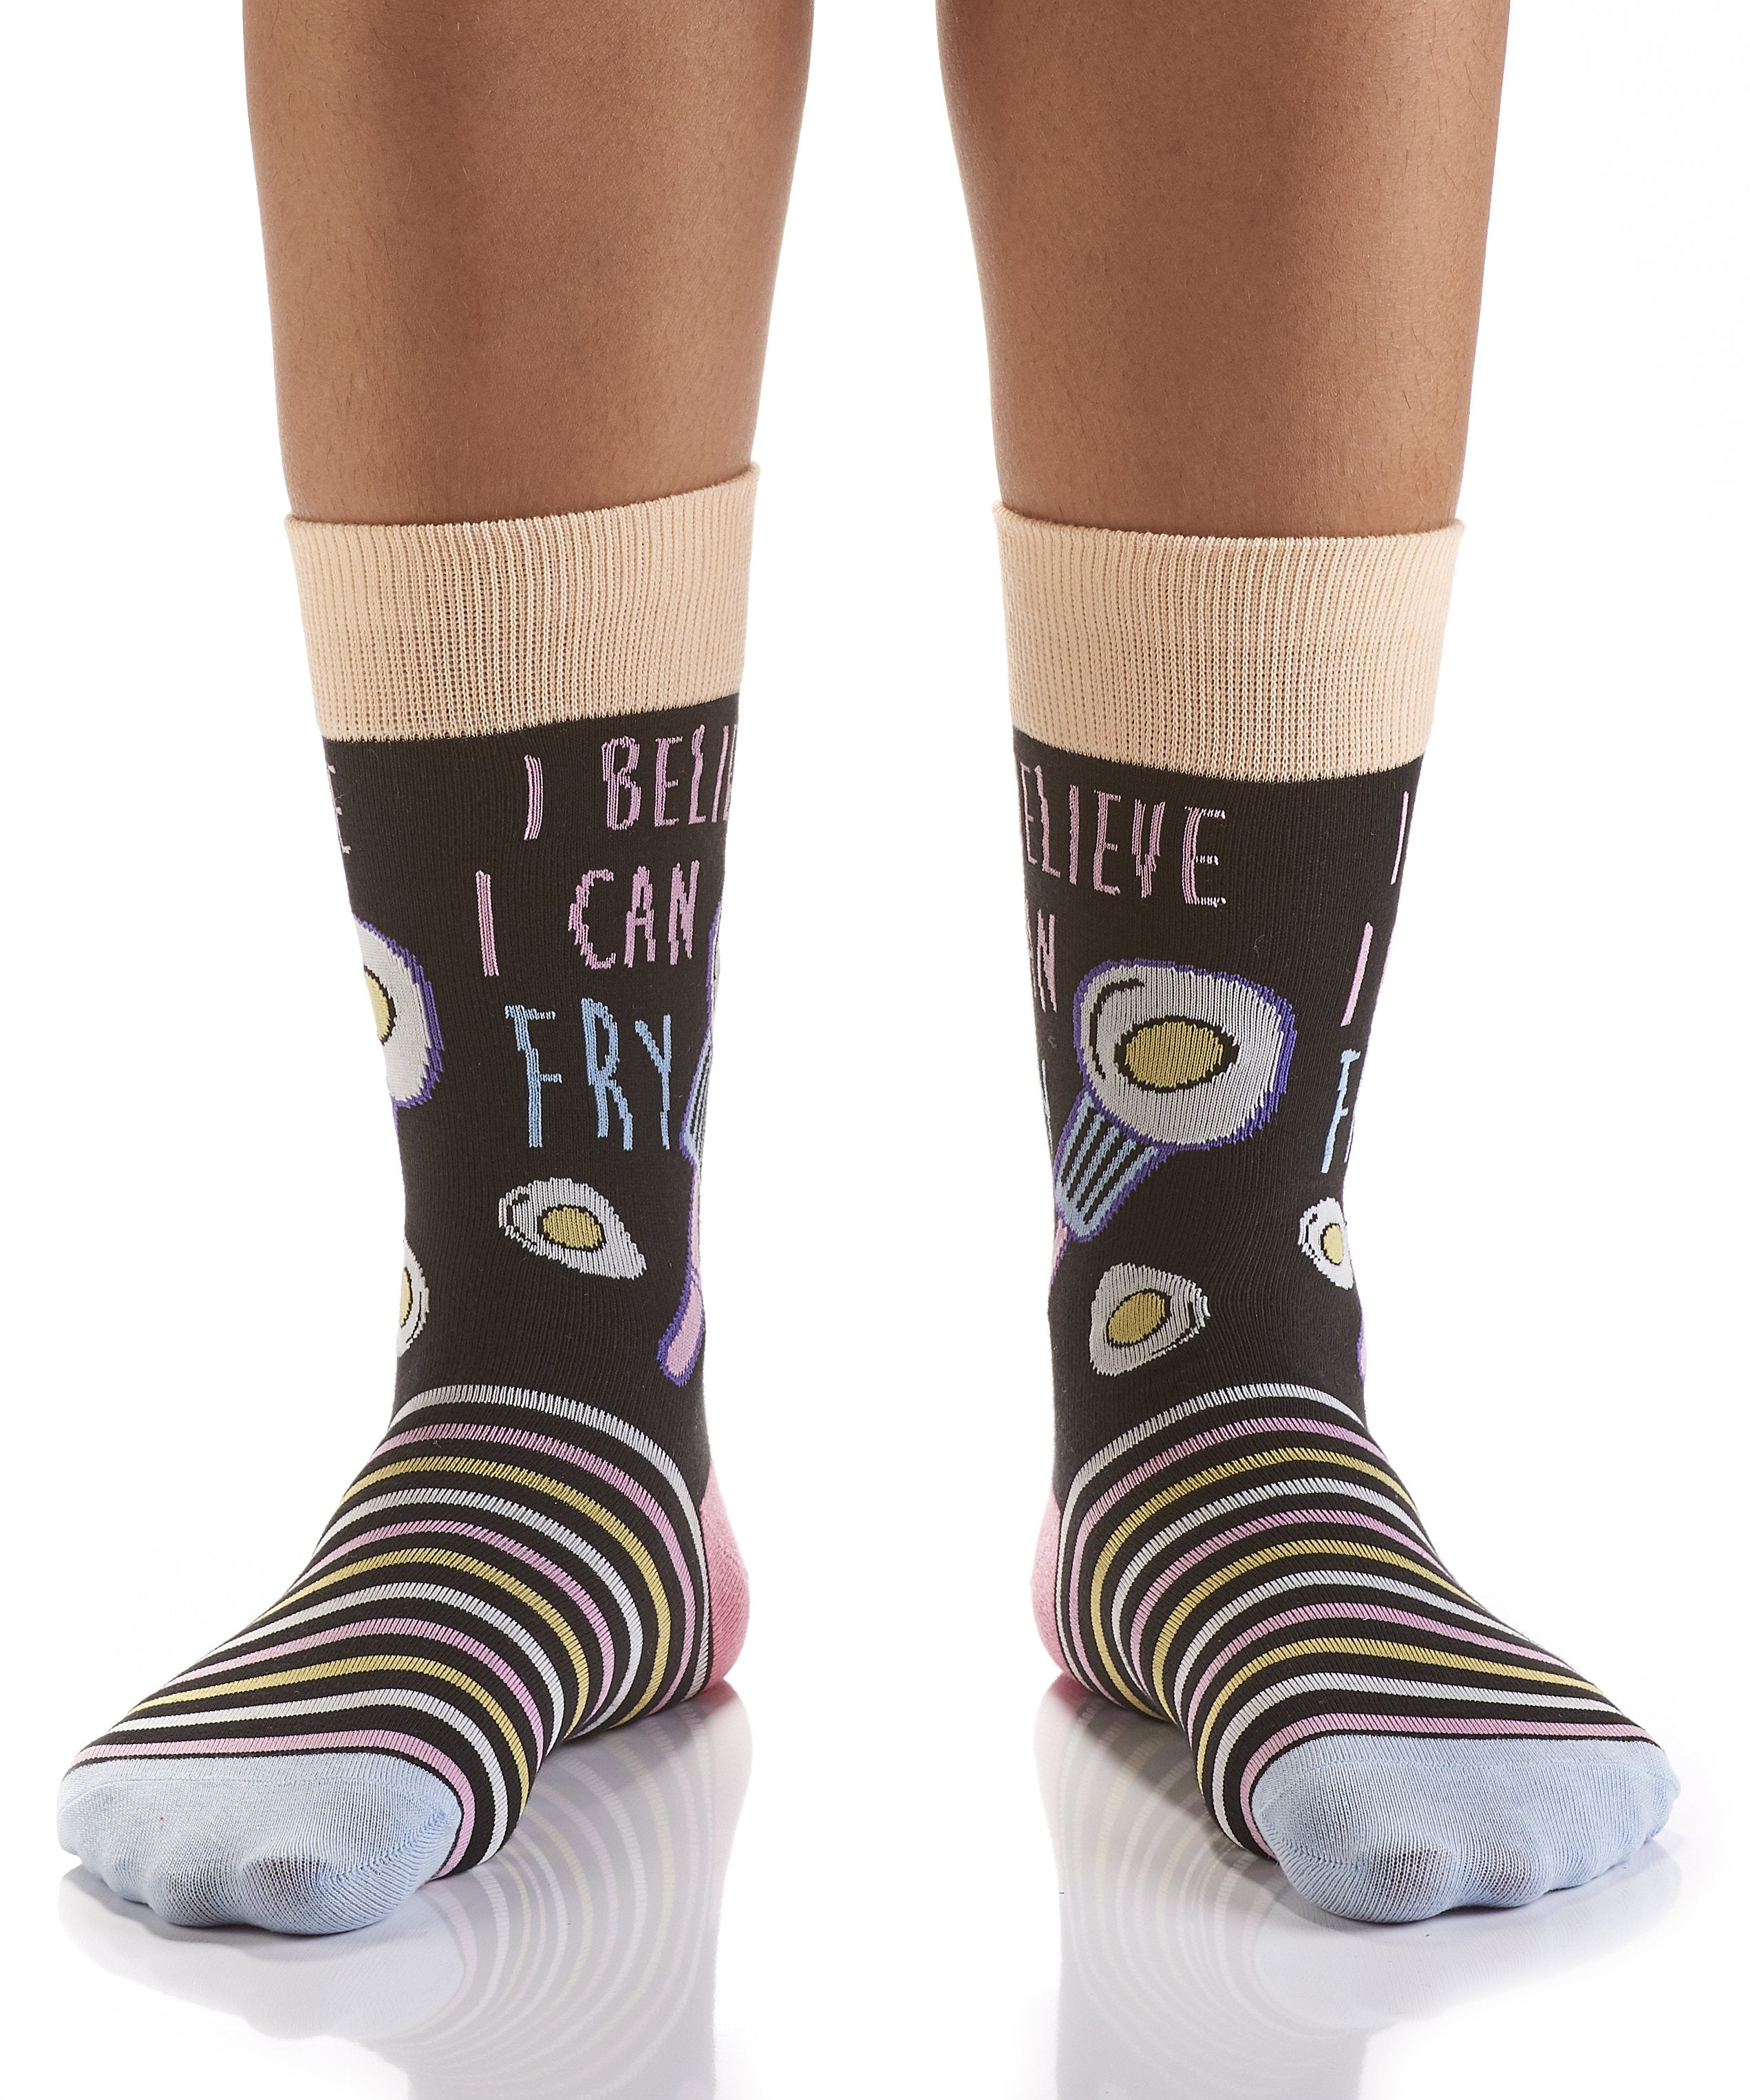 Breakfast is Served: Women's Crew Socks